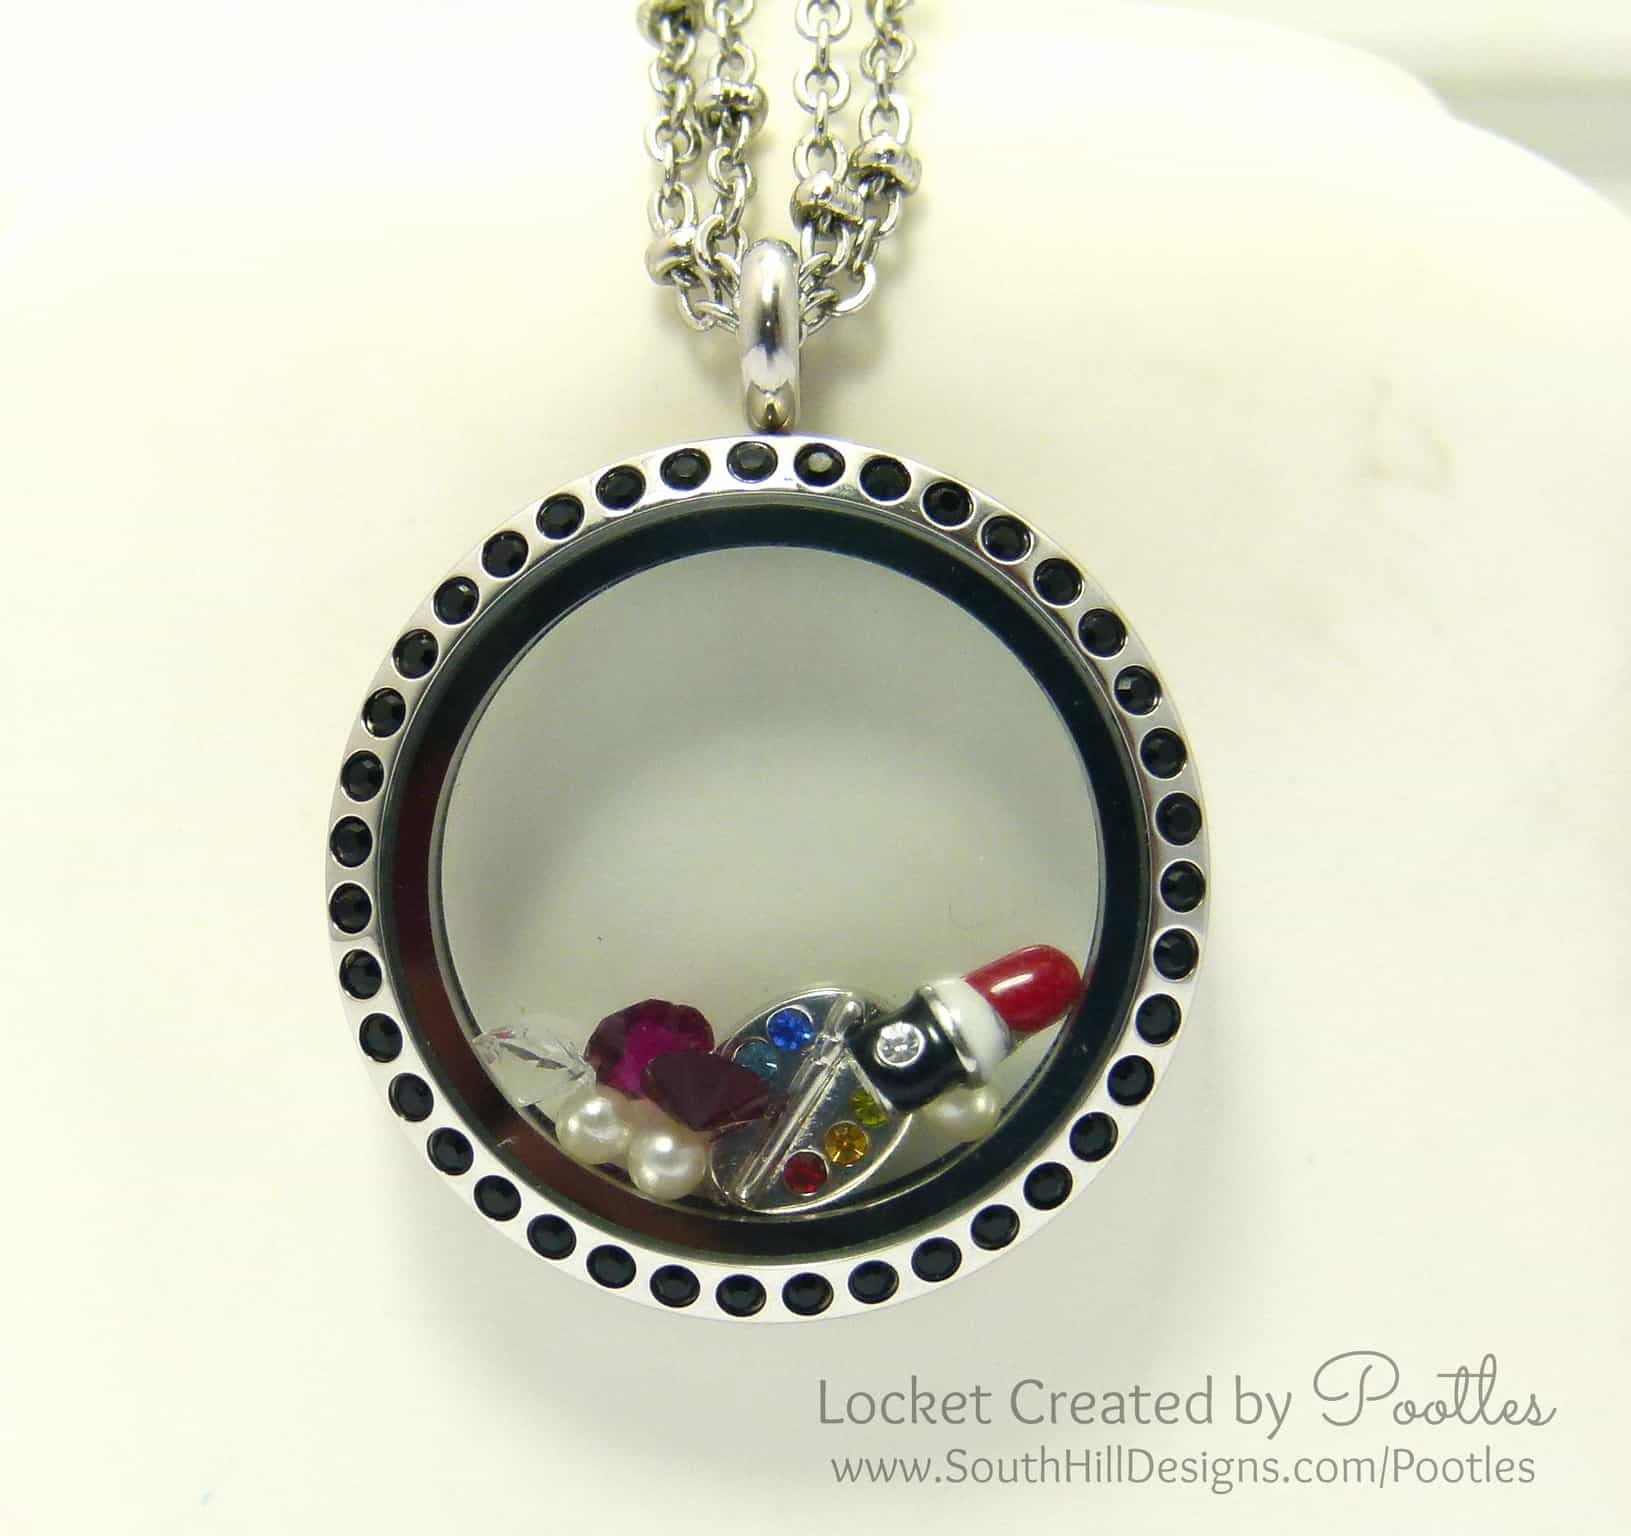 Makeup Artist's Locket from South Hill Designs Pootles Close Up